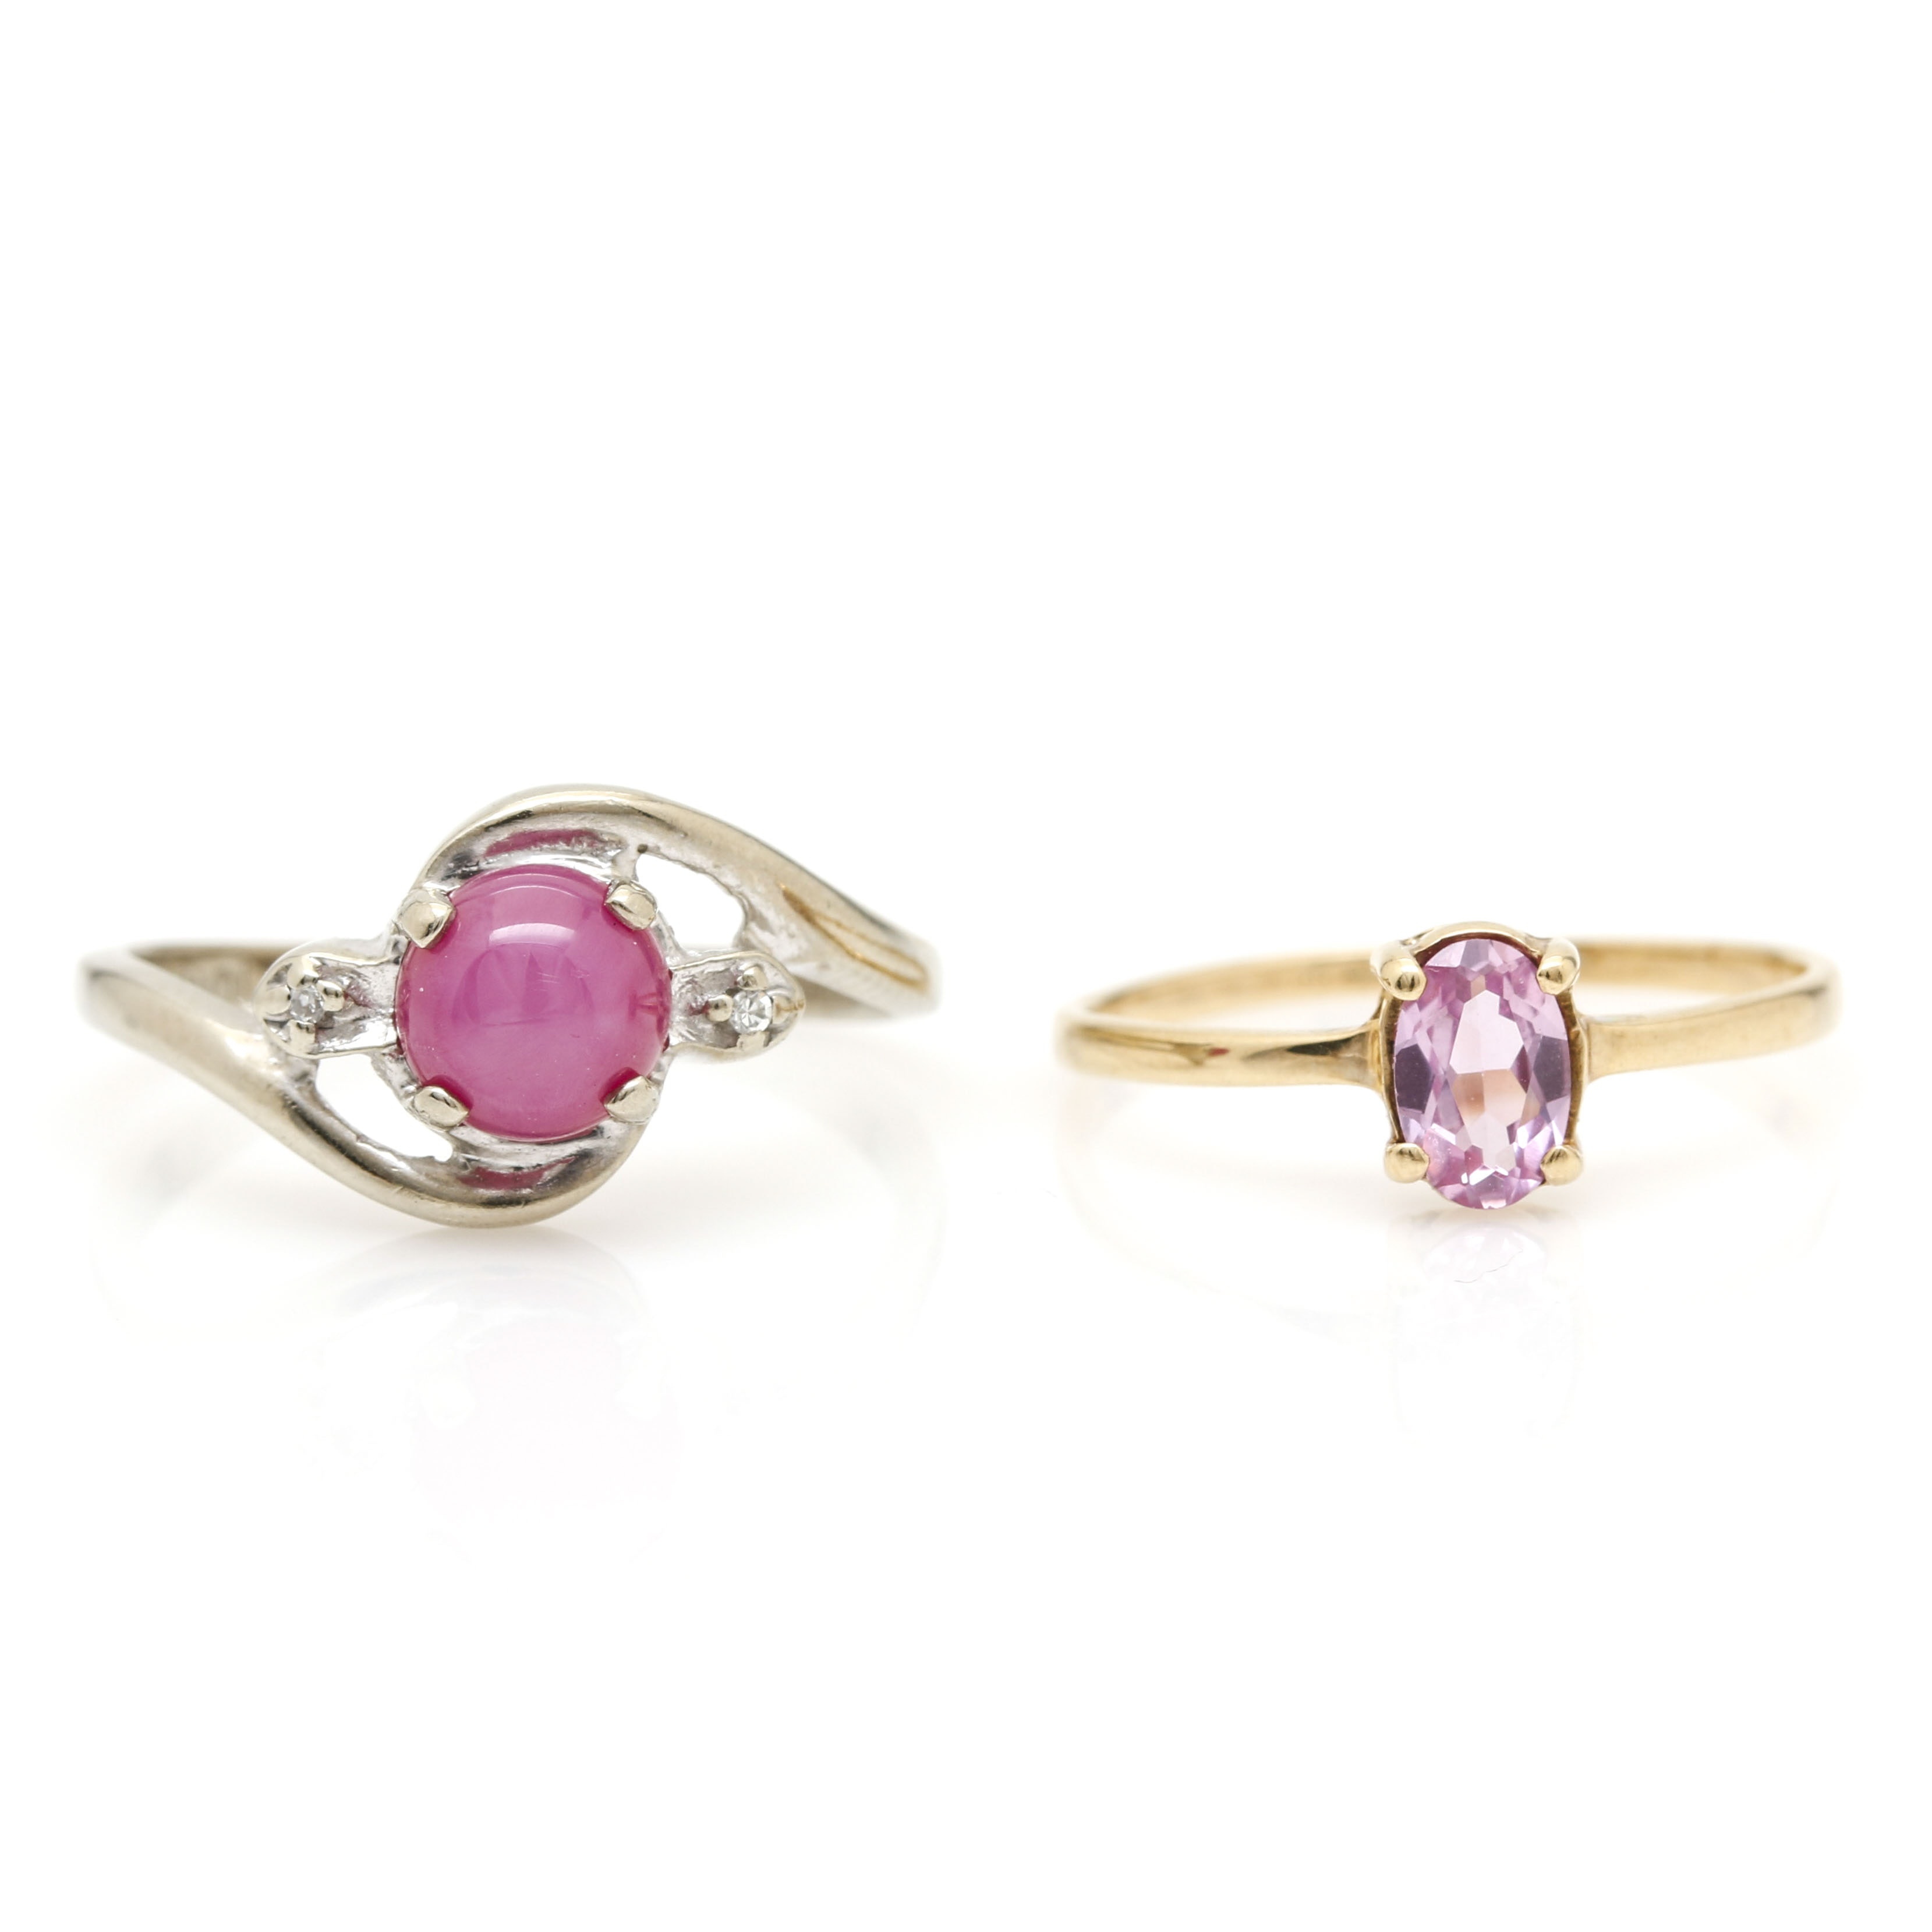 10K Yellow Gold Pink Sapphire Ring and 10K White Gold Star Ruby and Diamond Ring